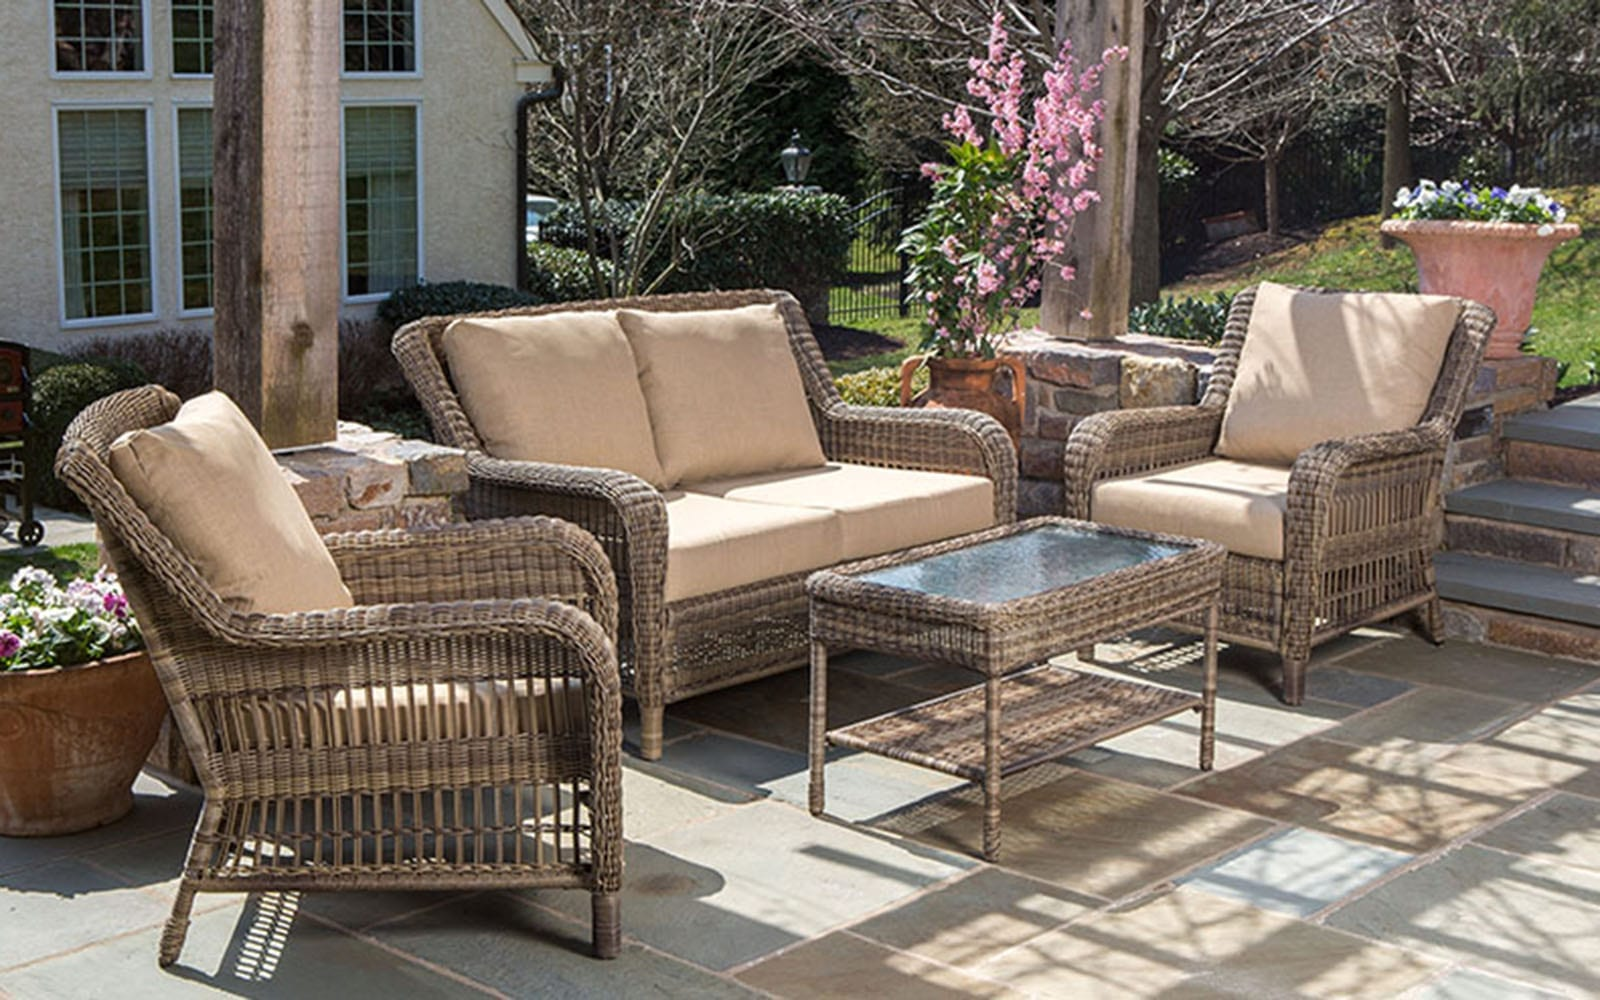 Outdoor Furniture Patio Set - Wicker Chairs and Tables